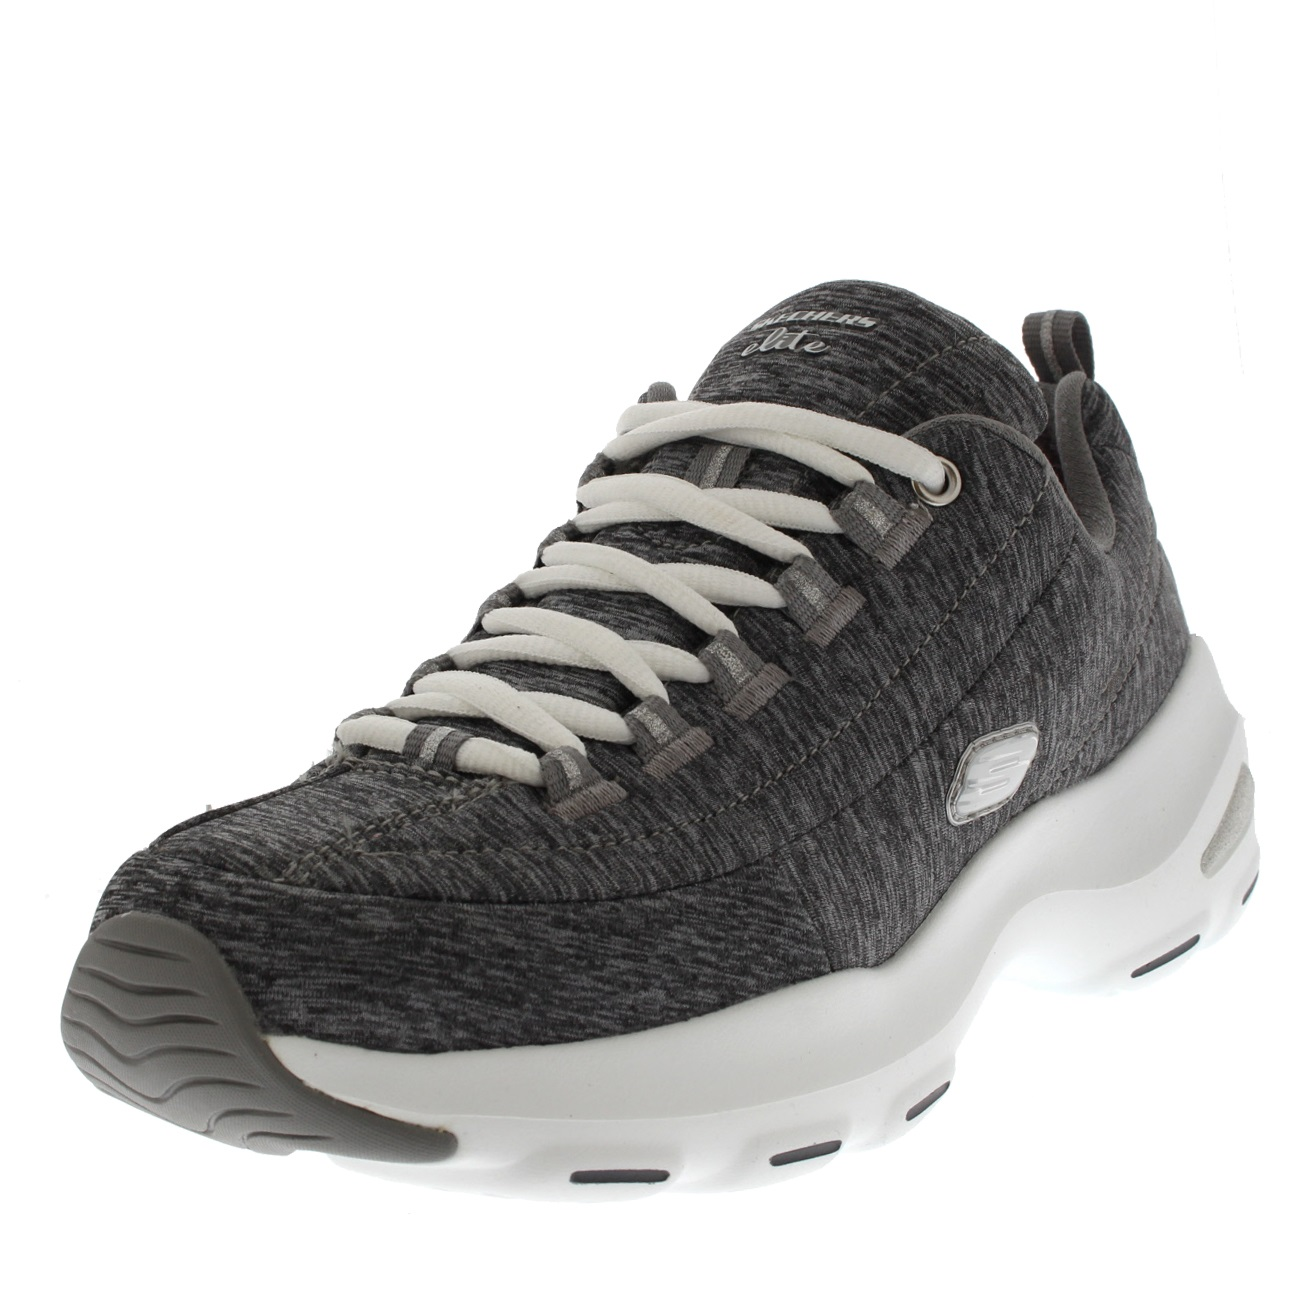 Skechers D'Lite Ultra Meditative